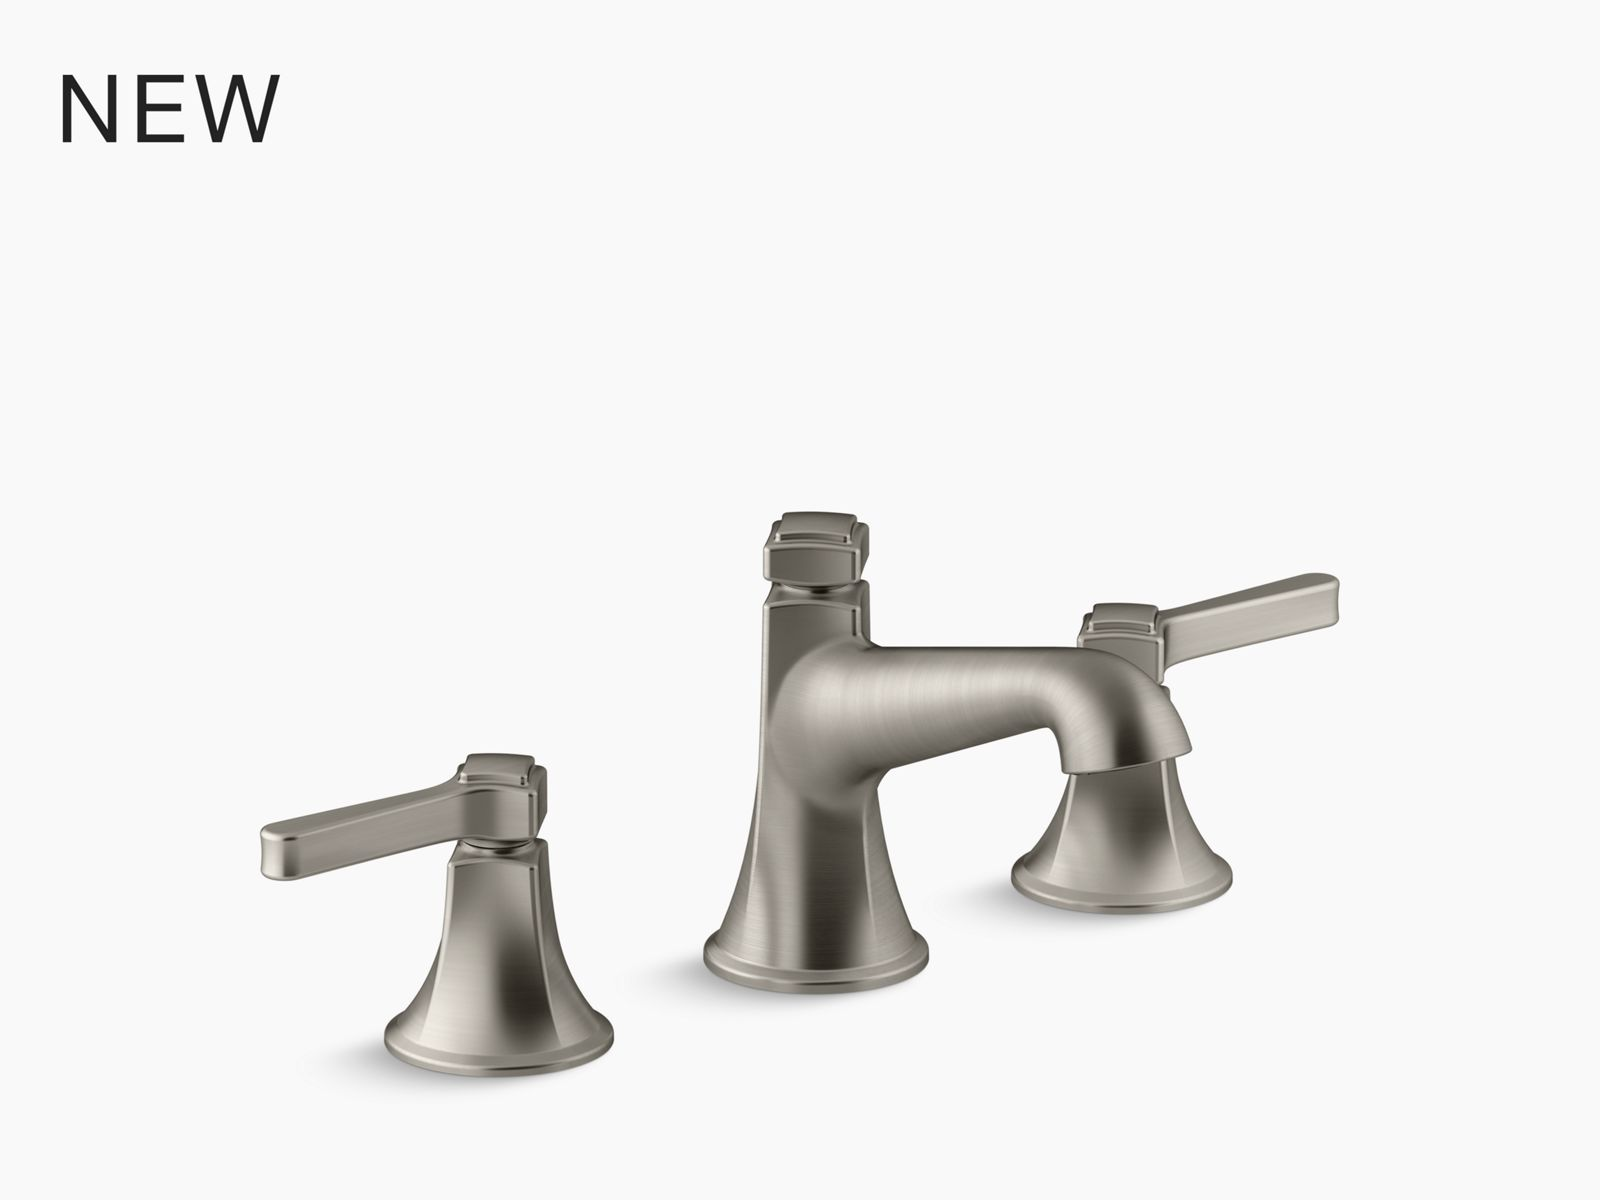 artifacts single hole kitchen sink faucet with 17 5 8 pull down spout docknetik magnetic docking system and 3 function sprayhead featuring sweep